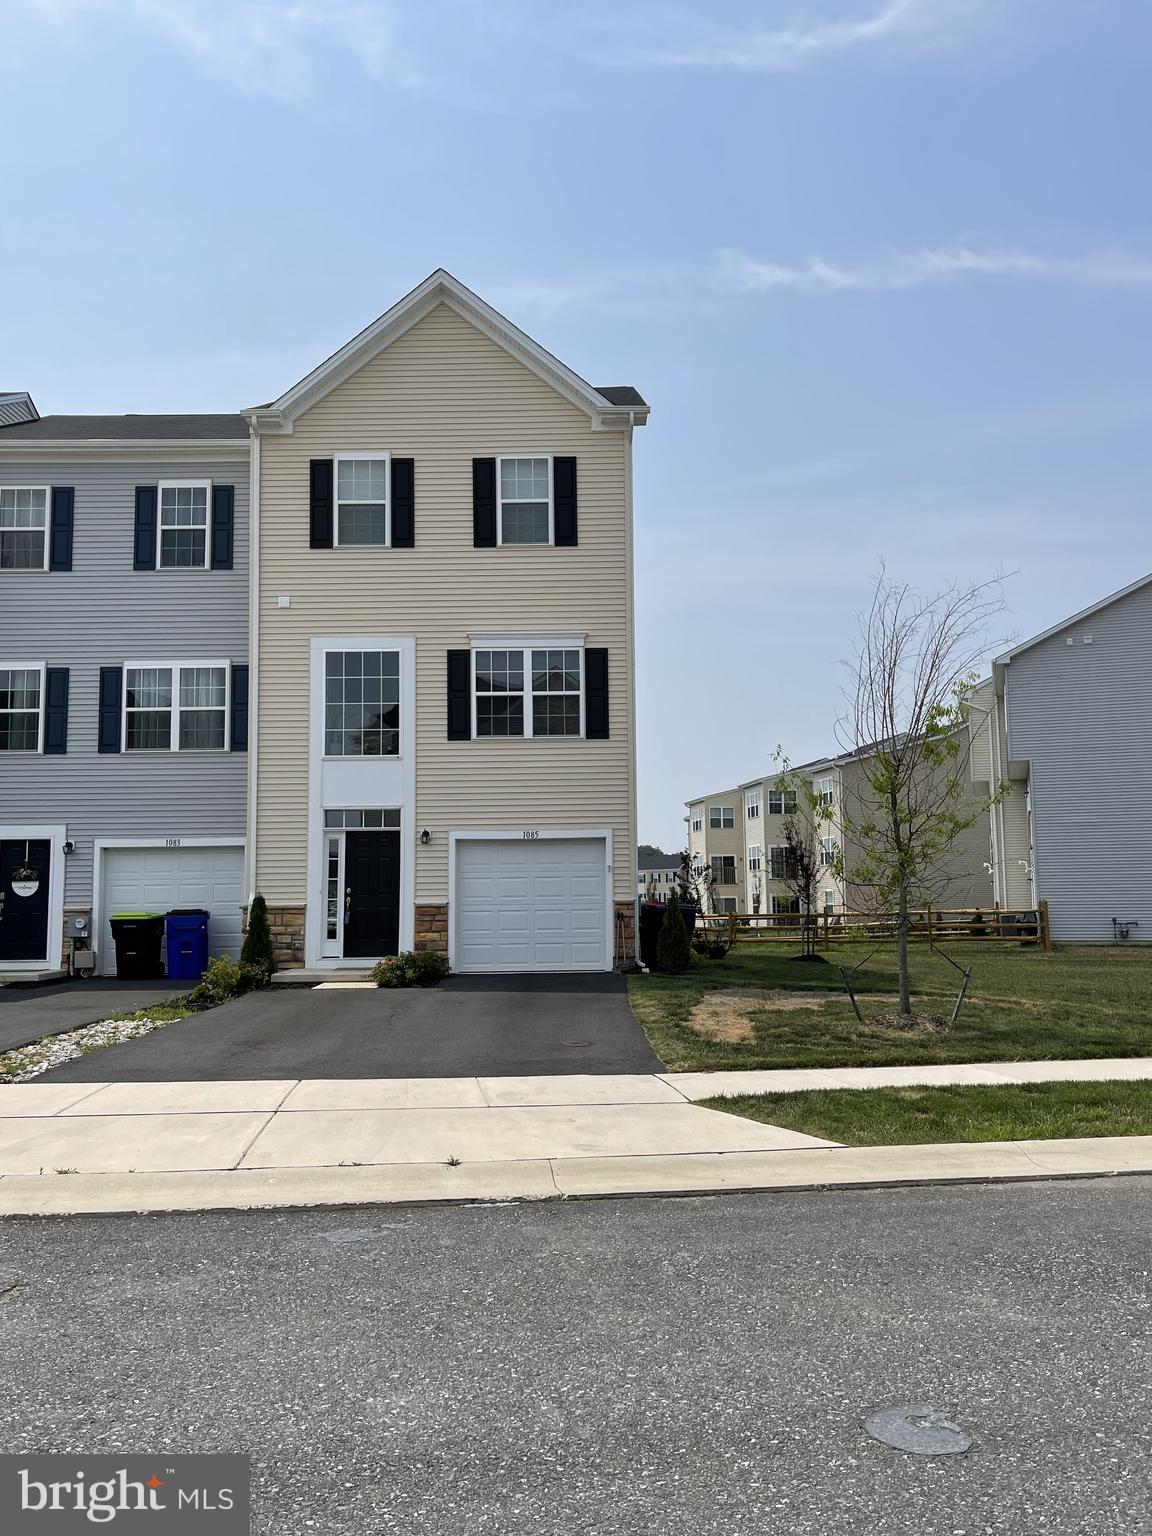 Seller will need November 22, 2021 Settlement Date. WELCOME to 1085 Wickersham Way (Tydings model)This 3 story extended Townhome features an exquisite foyer with Weathered colored hardwood flooring as you enter the lower level. Enter into the main door to the lower level down the hallway to  bedroom #4 or use as a family room, workout area, home office, make it your choice.  It's all up to you!  Walk upstairs to the 1st level where you will find a spacious kitchen area and more hardwood flooring! The kitchen features Moon White granite on the island with double sink, and the countertops which offers a pop of color against the Espresso colored cabinets, all stainless steel kitchen appliances to include natural gas cooking, microwave, refrigerator and dishwasher and pantry. The great room and sunroom are places where you might entertain your guests and offers tremendous natural light. A powder room is on the main level as well. We then walk up to the 3rd level where you enter your Primary Bedroom! There you will find a sitting room where you might lay on your chaise for a daytime nap! The master bathroom features Cabo Coast ceramic tile on the floors and surrounding the shower. The hall bath, along with 2 other bedrooms and the laundry room are on this floor as well.  Laundry room located on the 3rd level, no more lugging the laundry up the steps!  The Hyett's Crossing community is home to over 70 acres of open space and this homesite backs up to open space and is located steps from overflow parking.